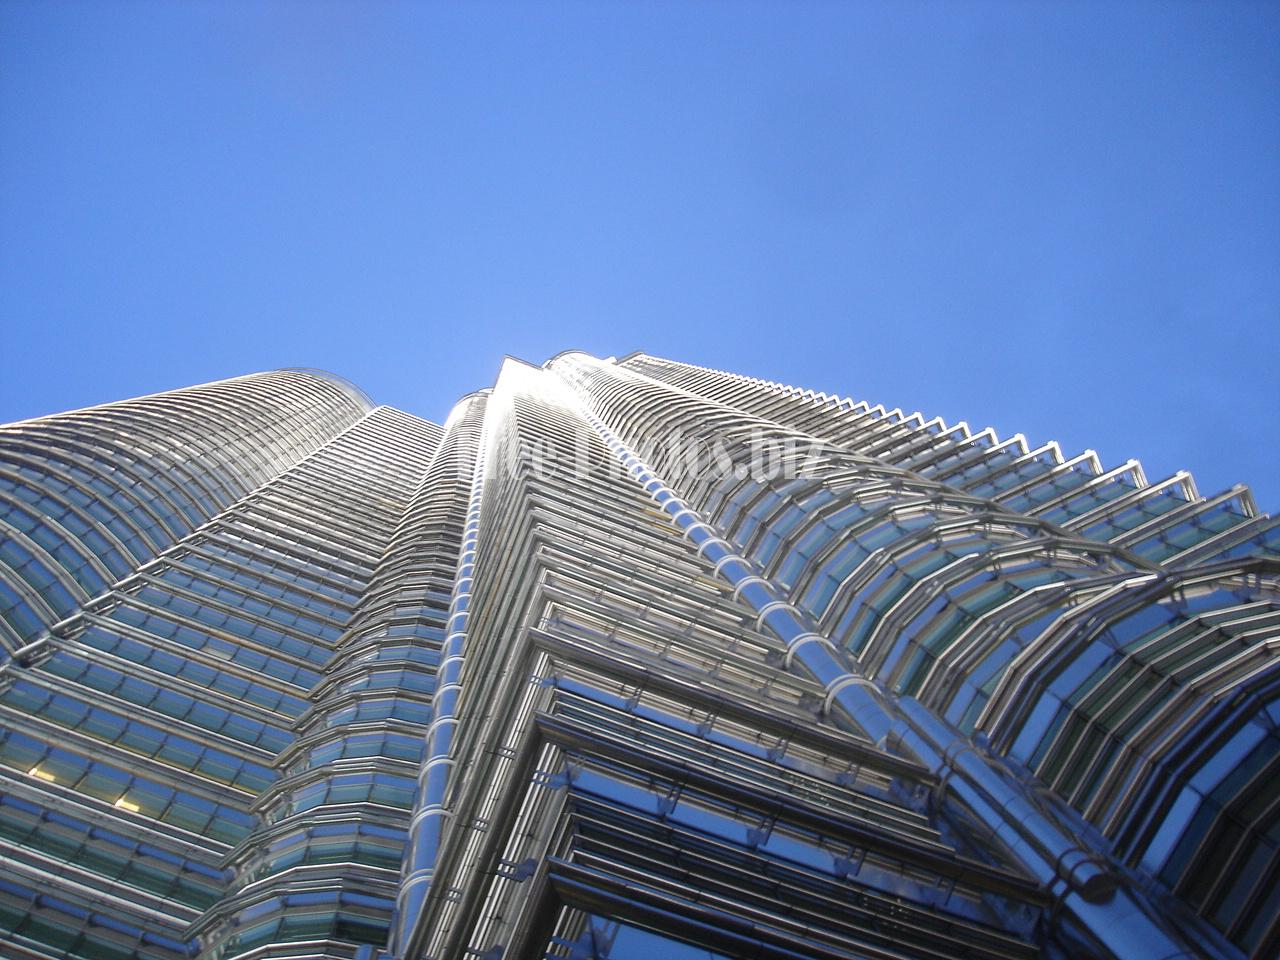 KLCC-viewed from ground level